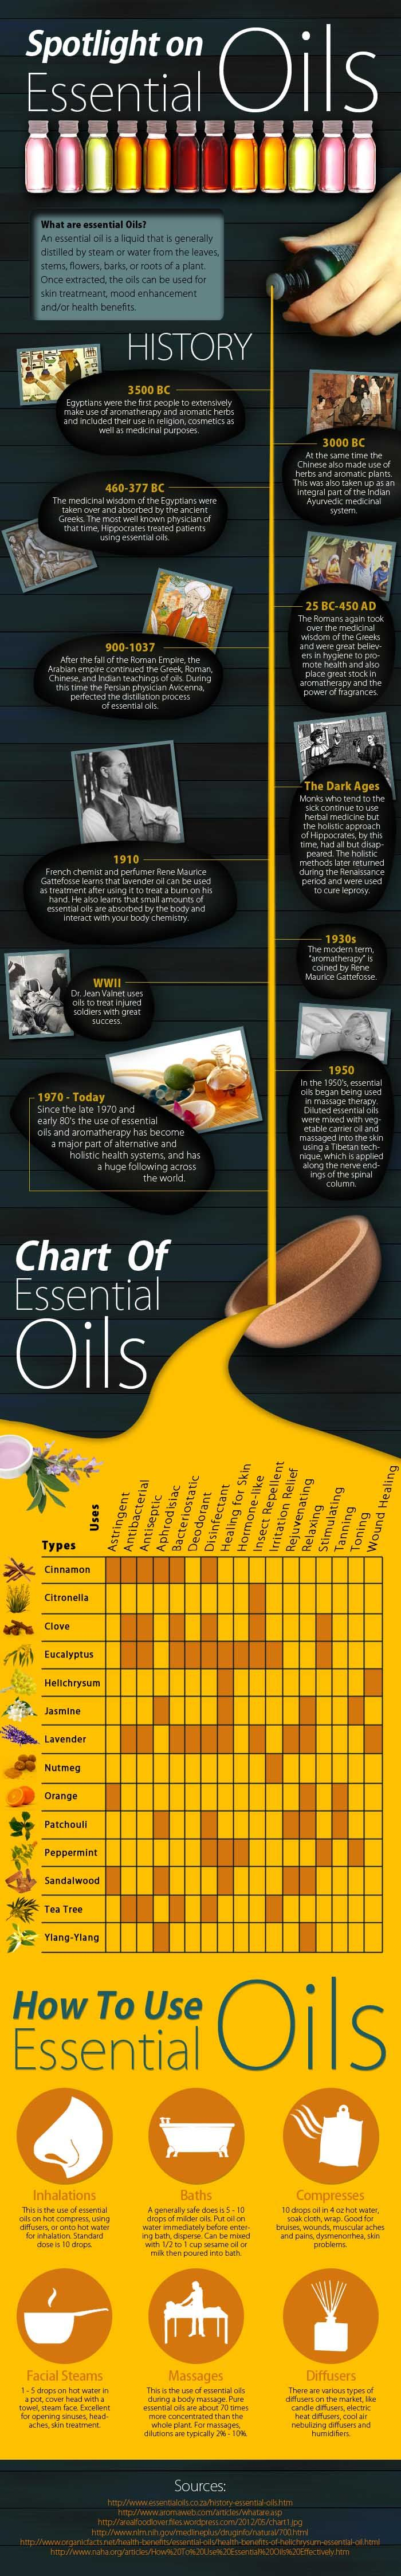 Essential Oils: Everything You Need To Know (Infographic) Amazing!!!!!